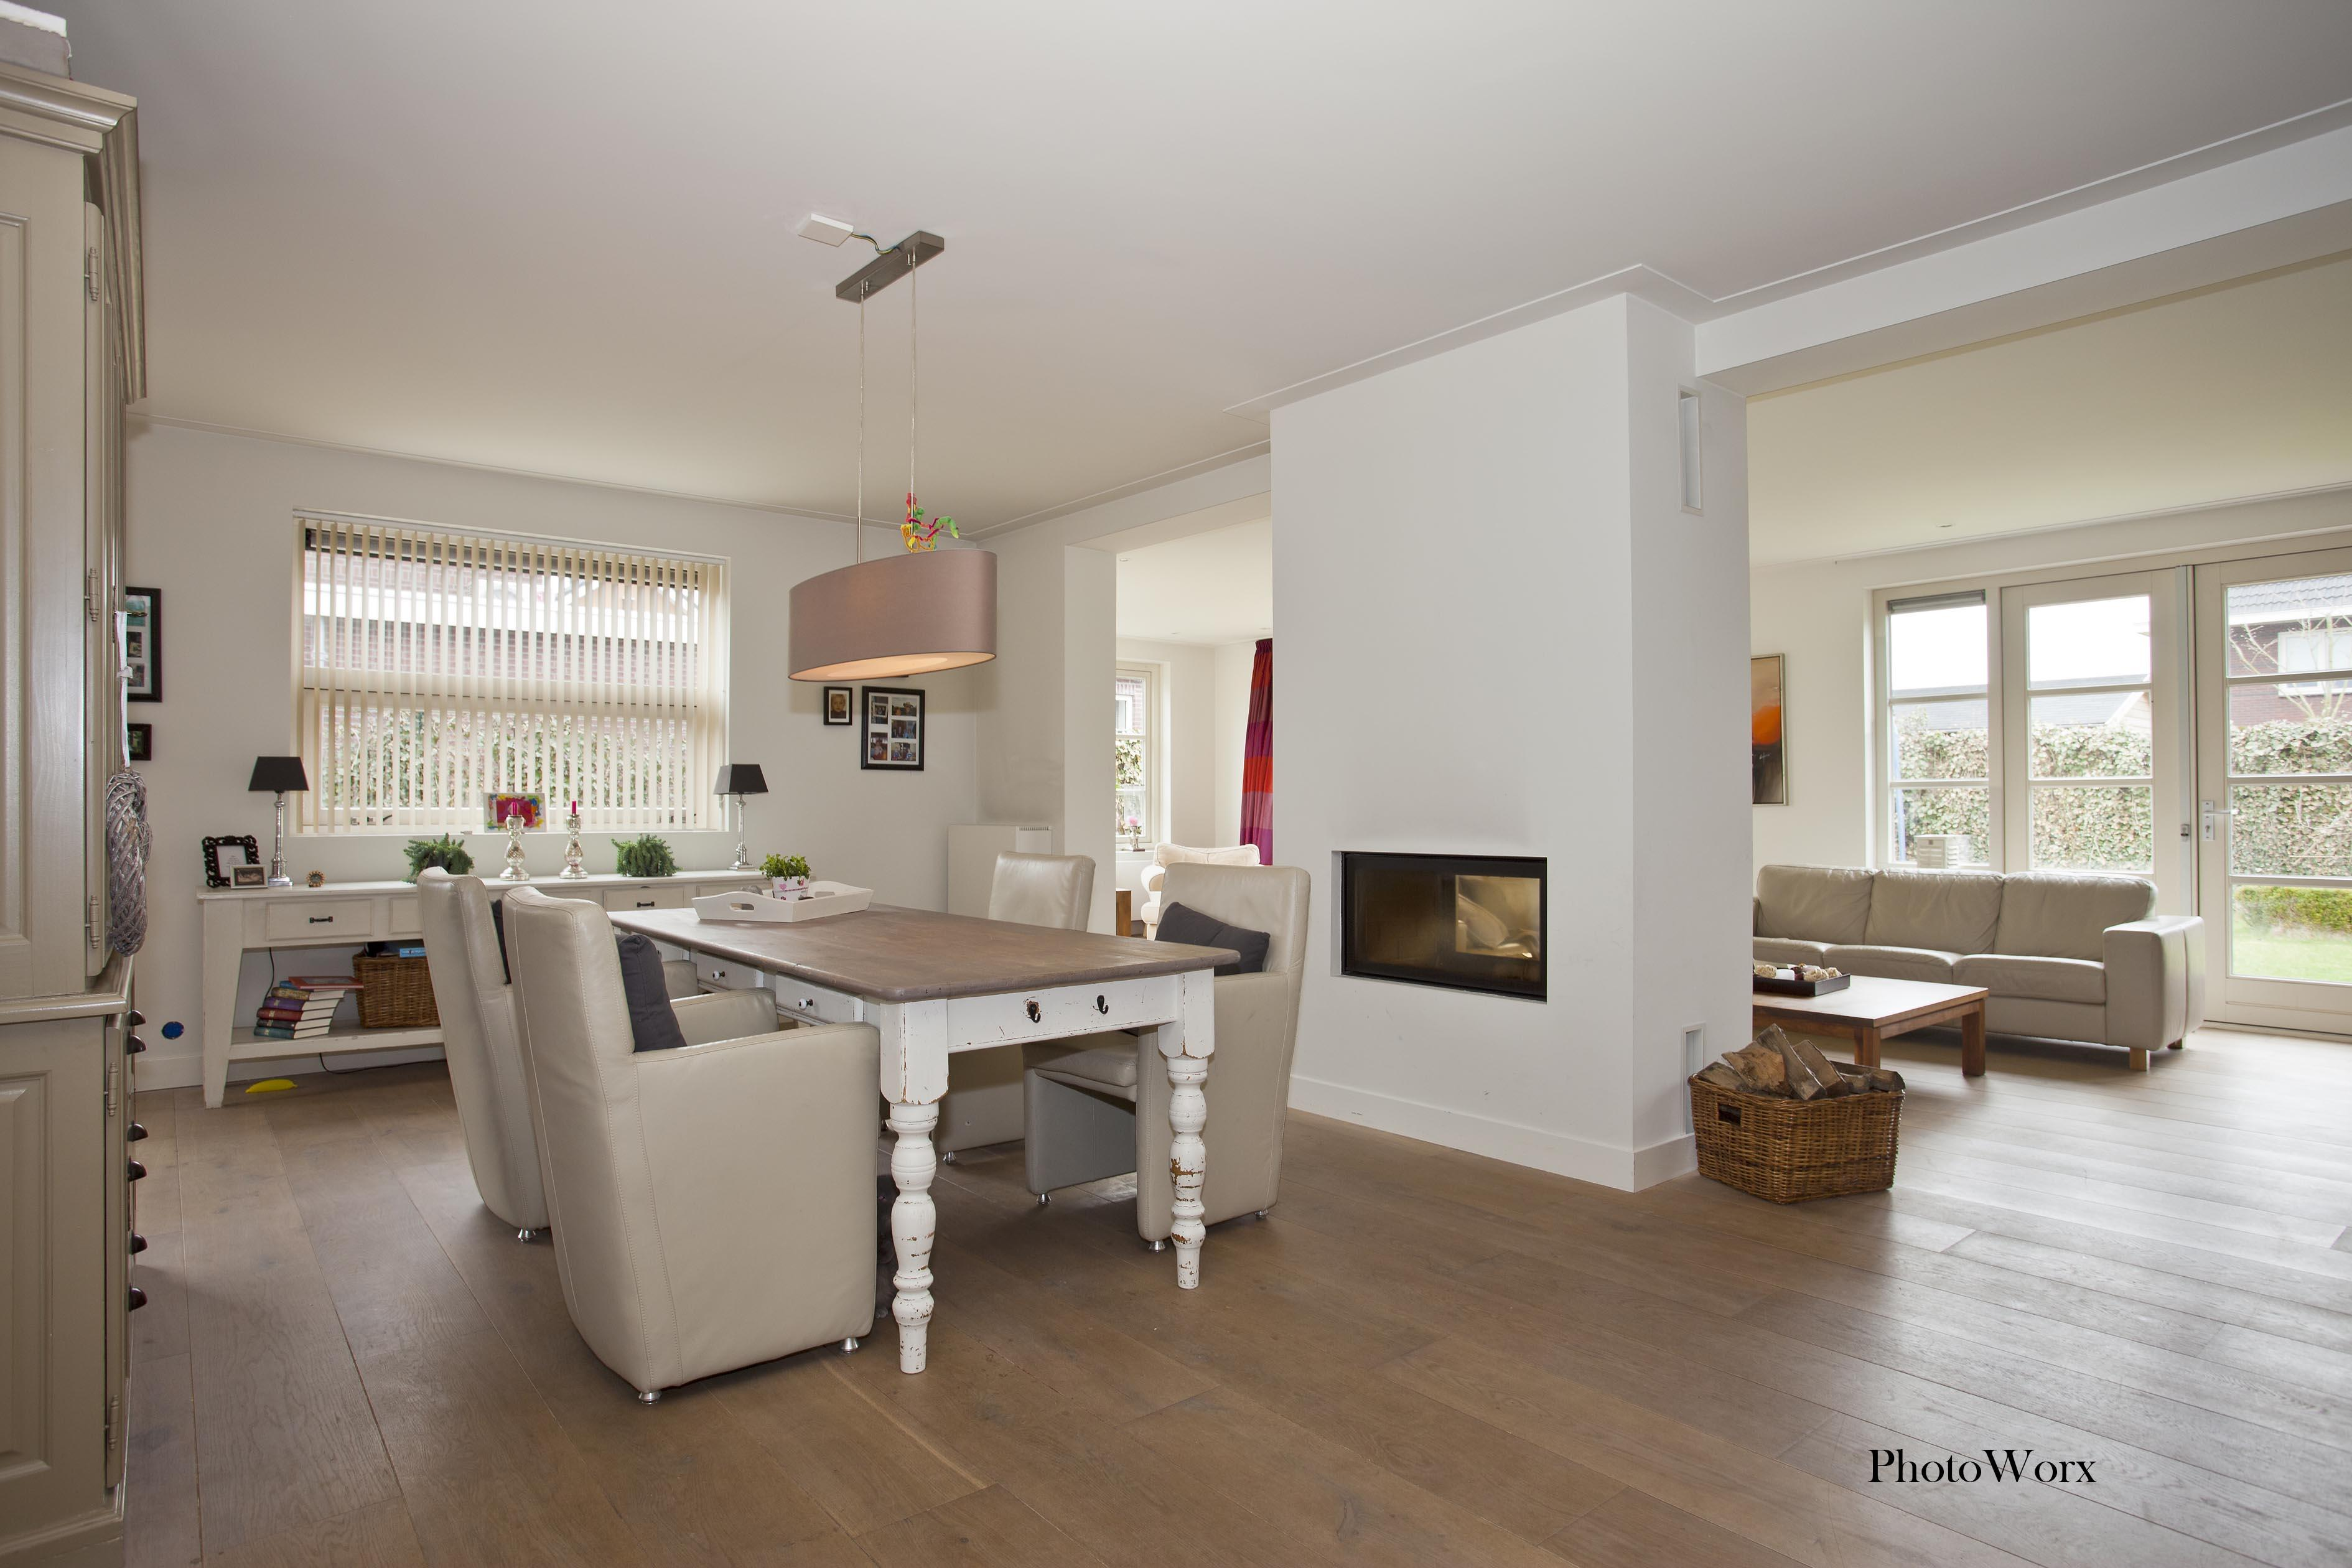 Hd photoworx huis interieur photoworx lelystad for Photo en interieur